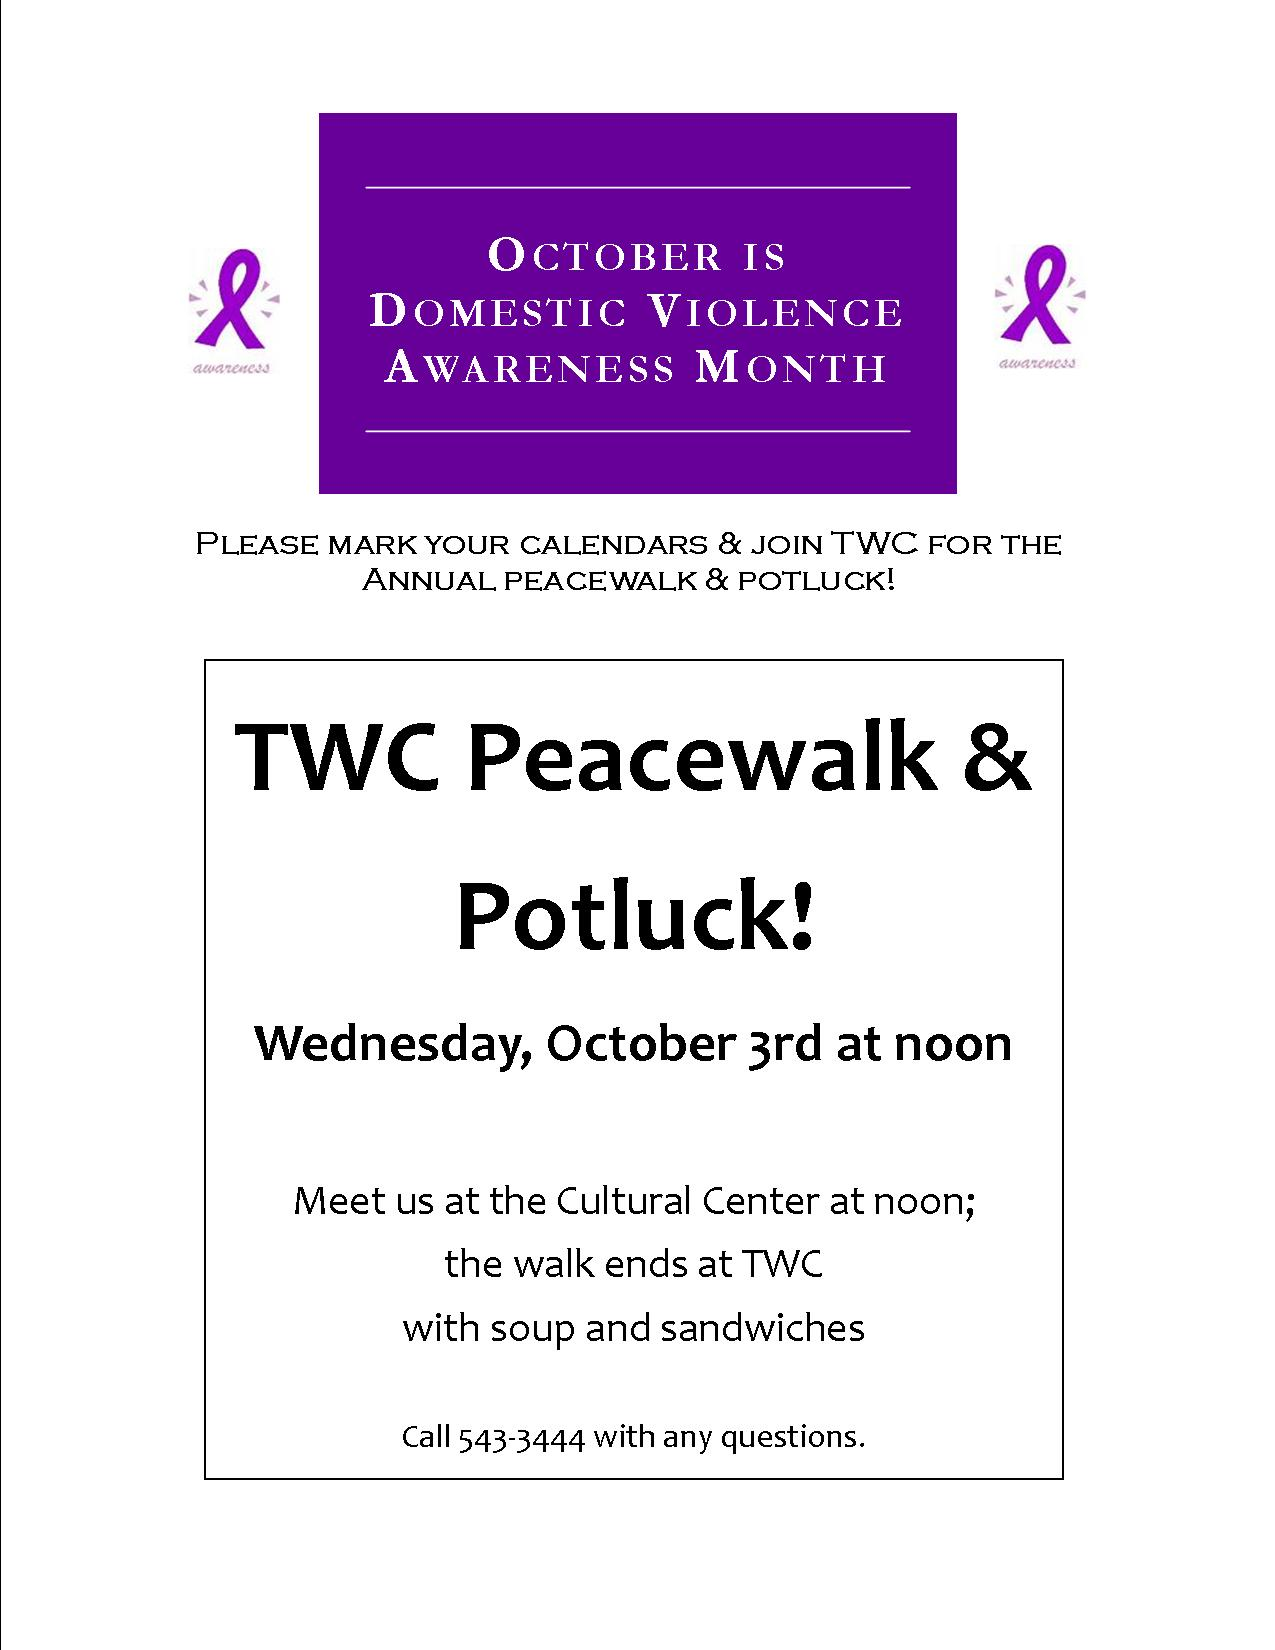 Peacewalk Announcement